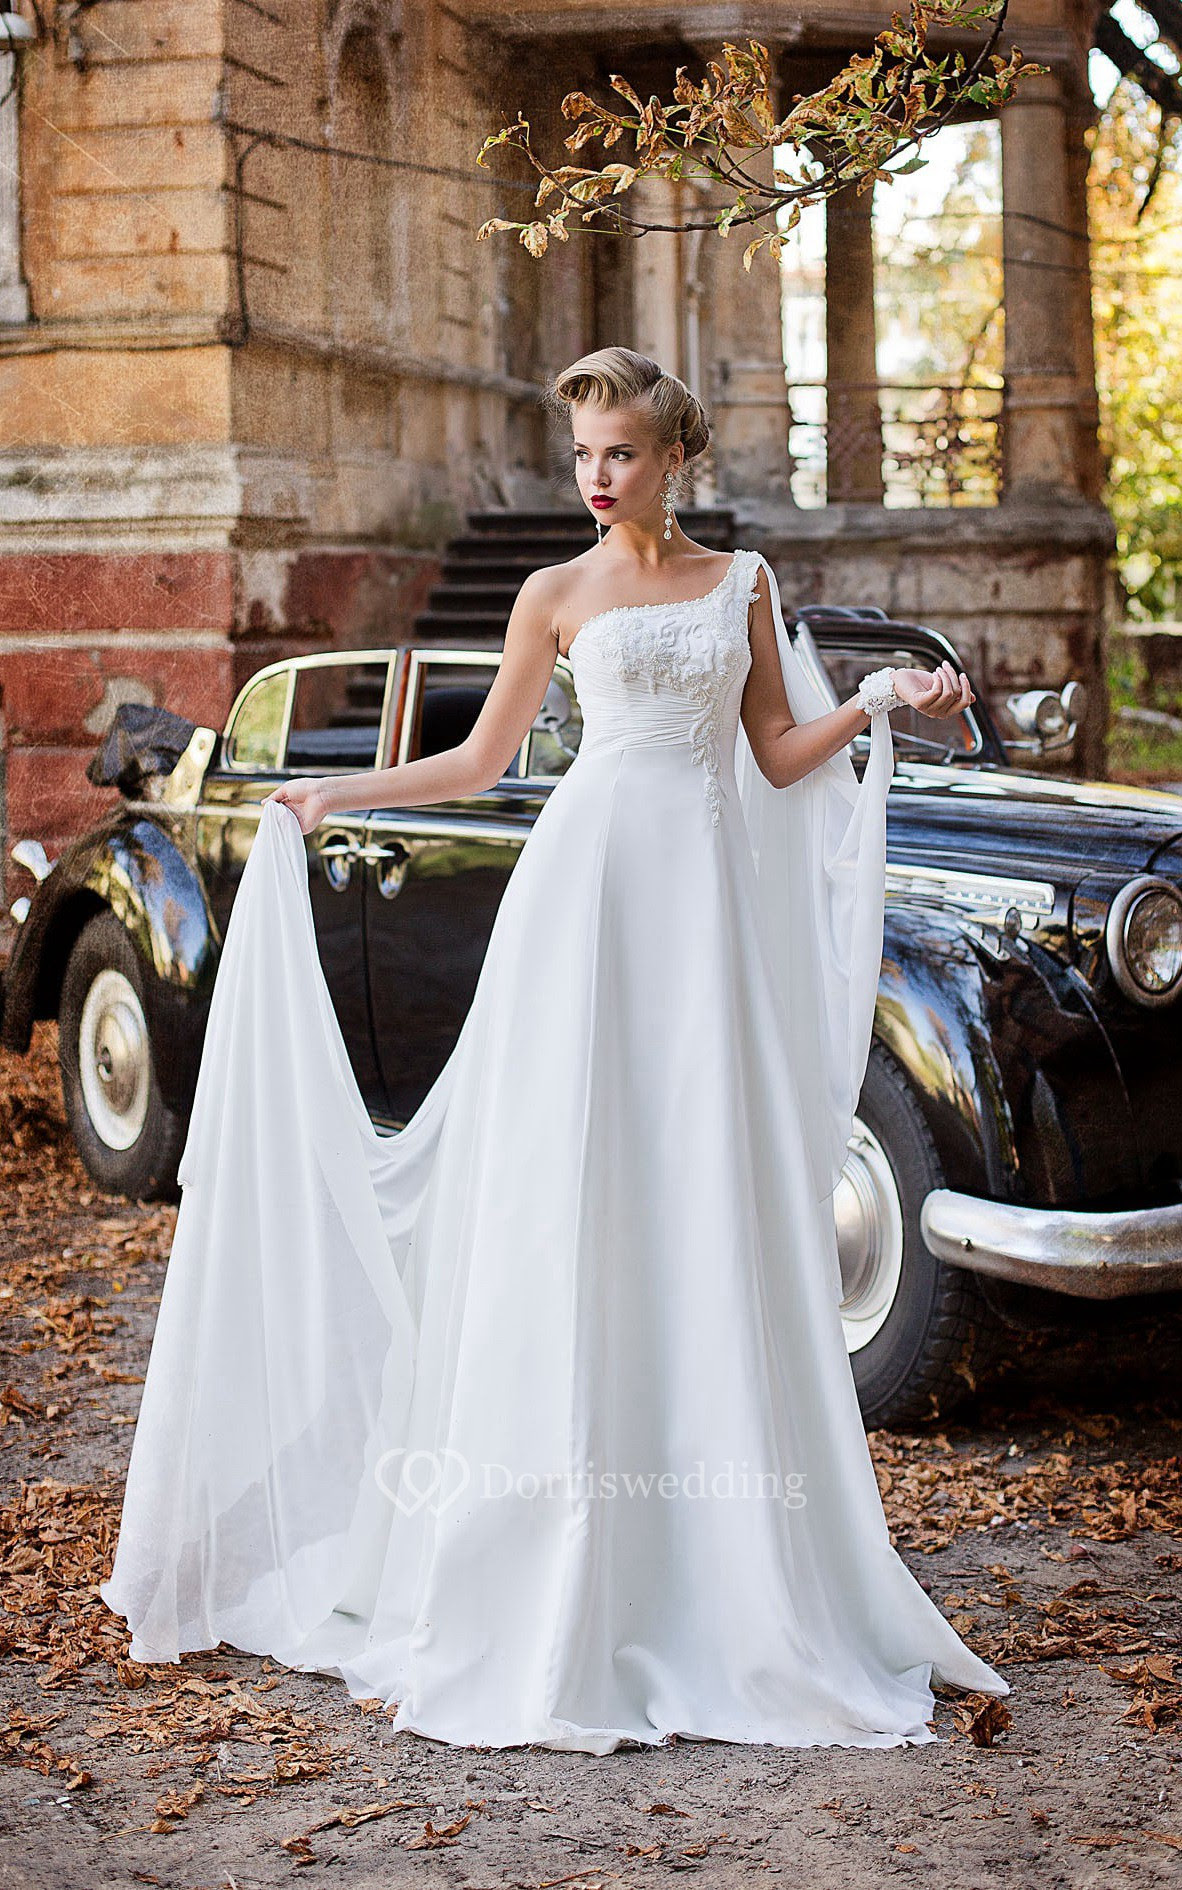 Sheath Floor-Length One-Shoulder Sleeveless Empire Lace-Up Chiffon Dress With Appliques And Beading